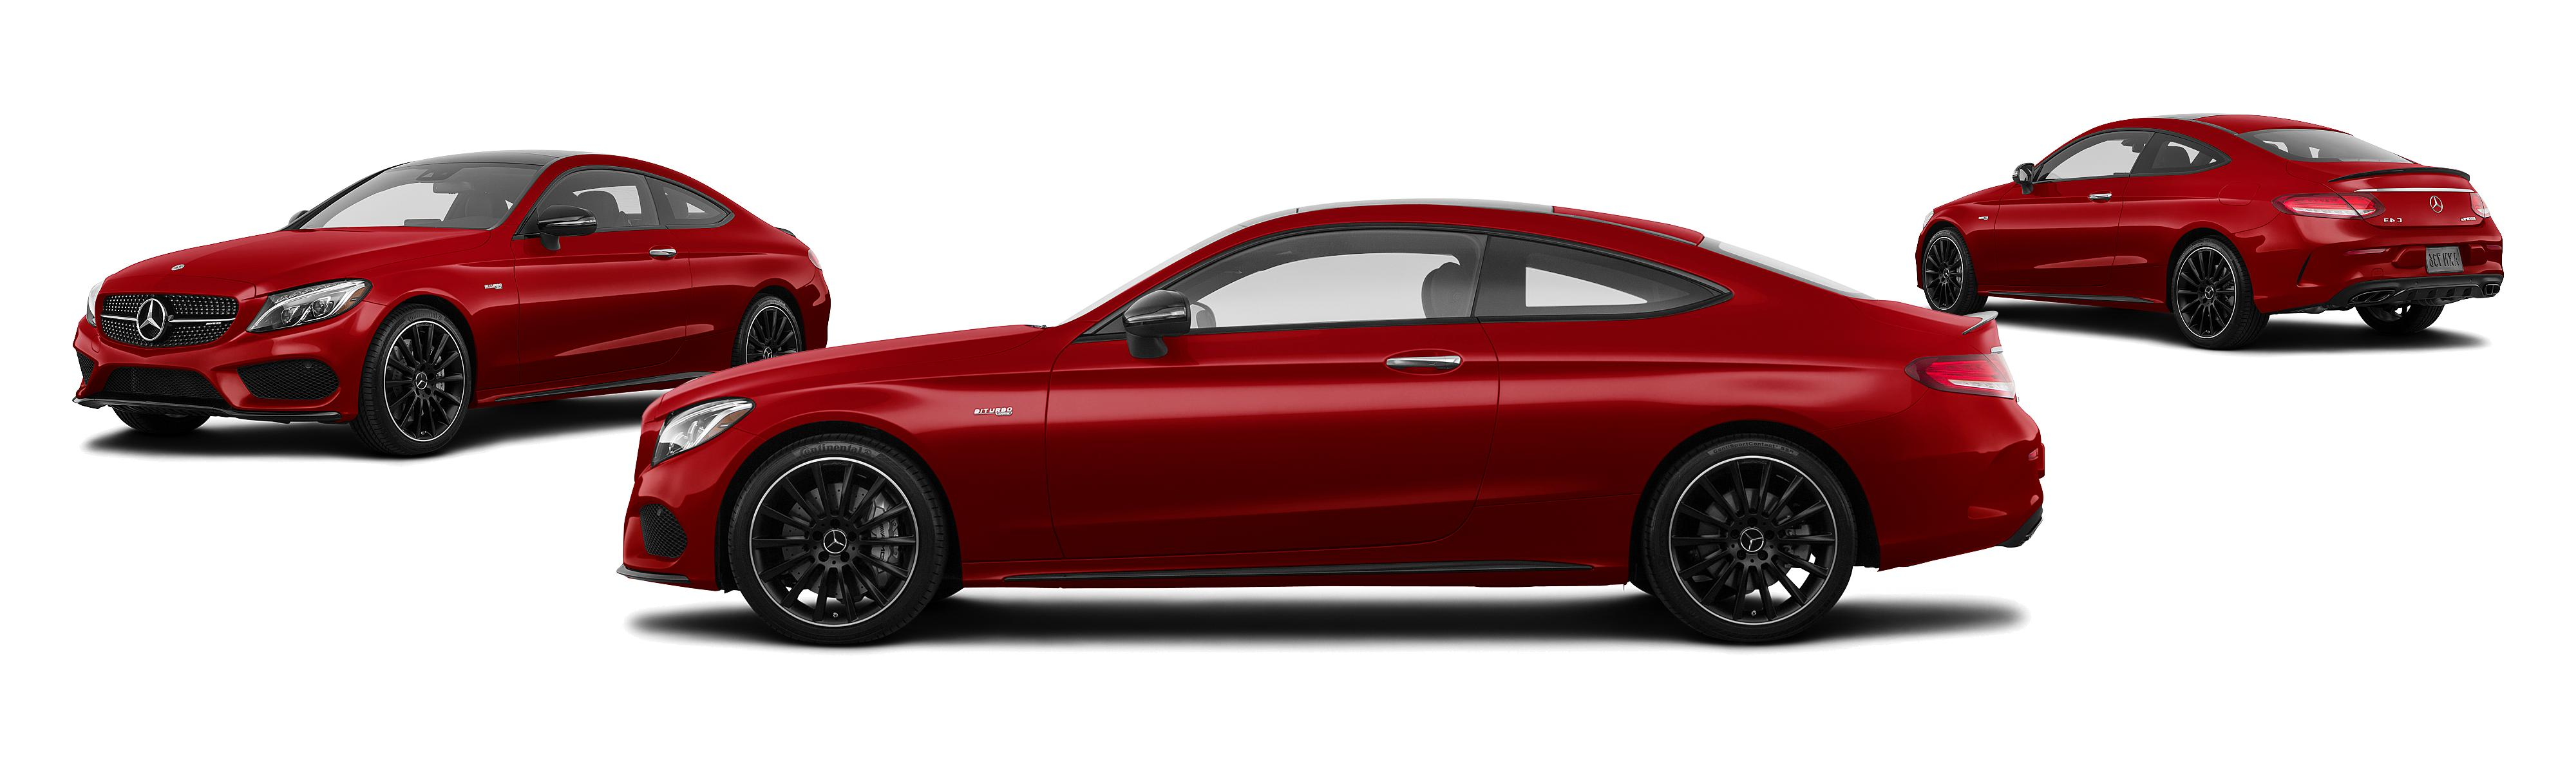 2018 Mercedes Benz C Class AWD AMG C 43 4MATIC 2dr Coupe Research